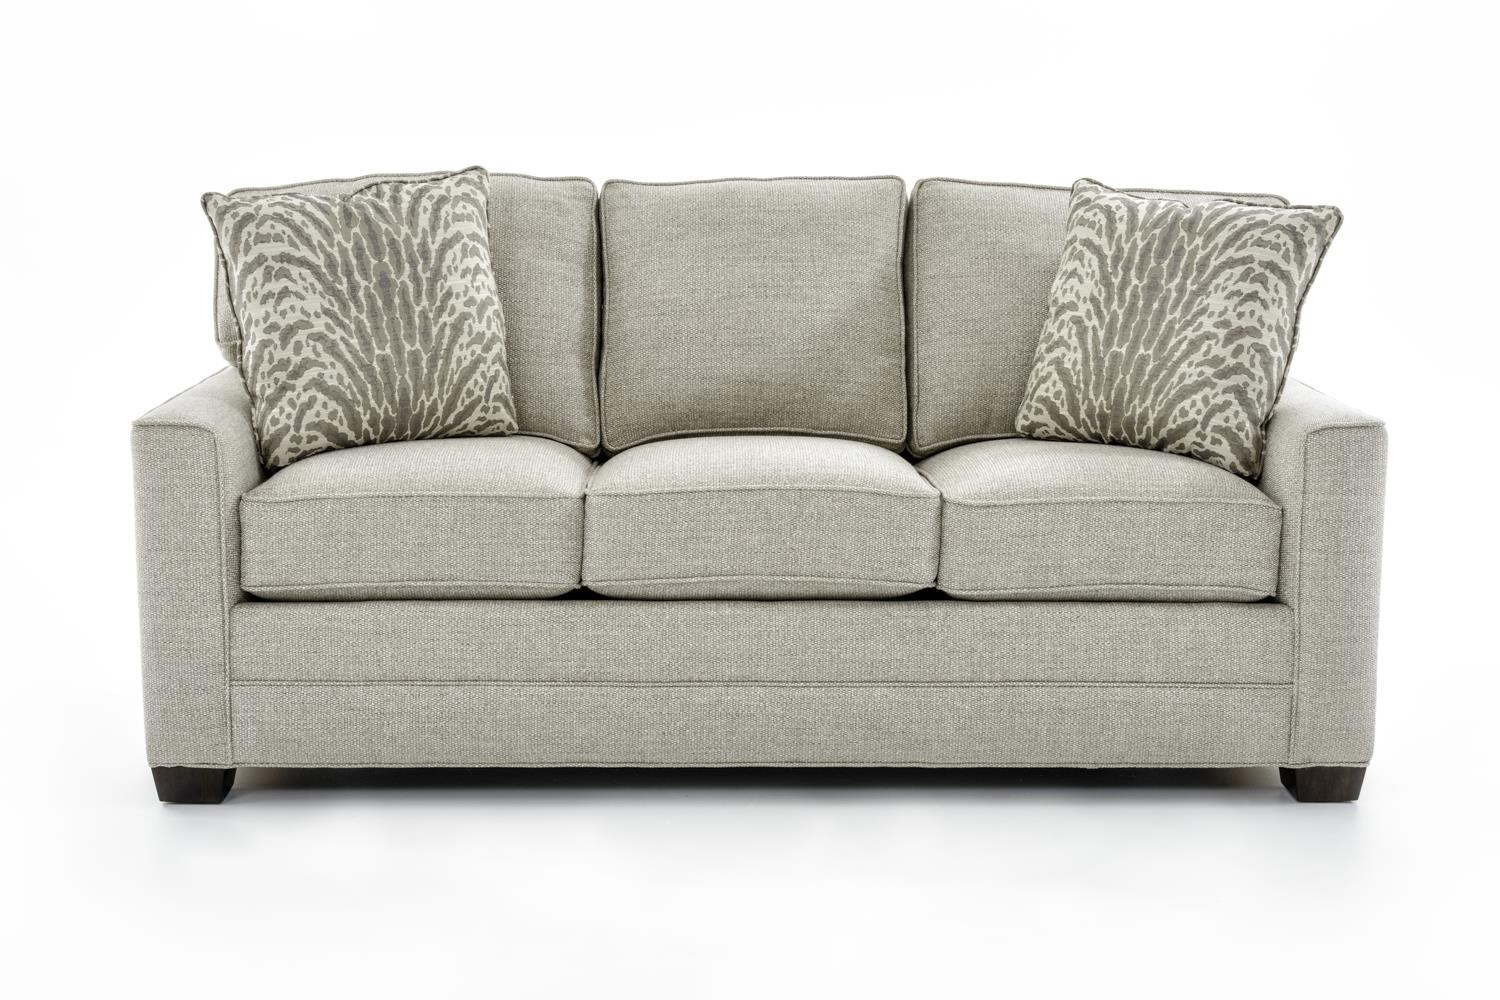 Solutions 2053 Customizable Sofa Sleeper by Huntington House at Baer's Furniture